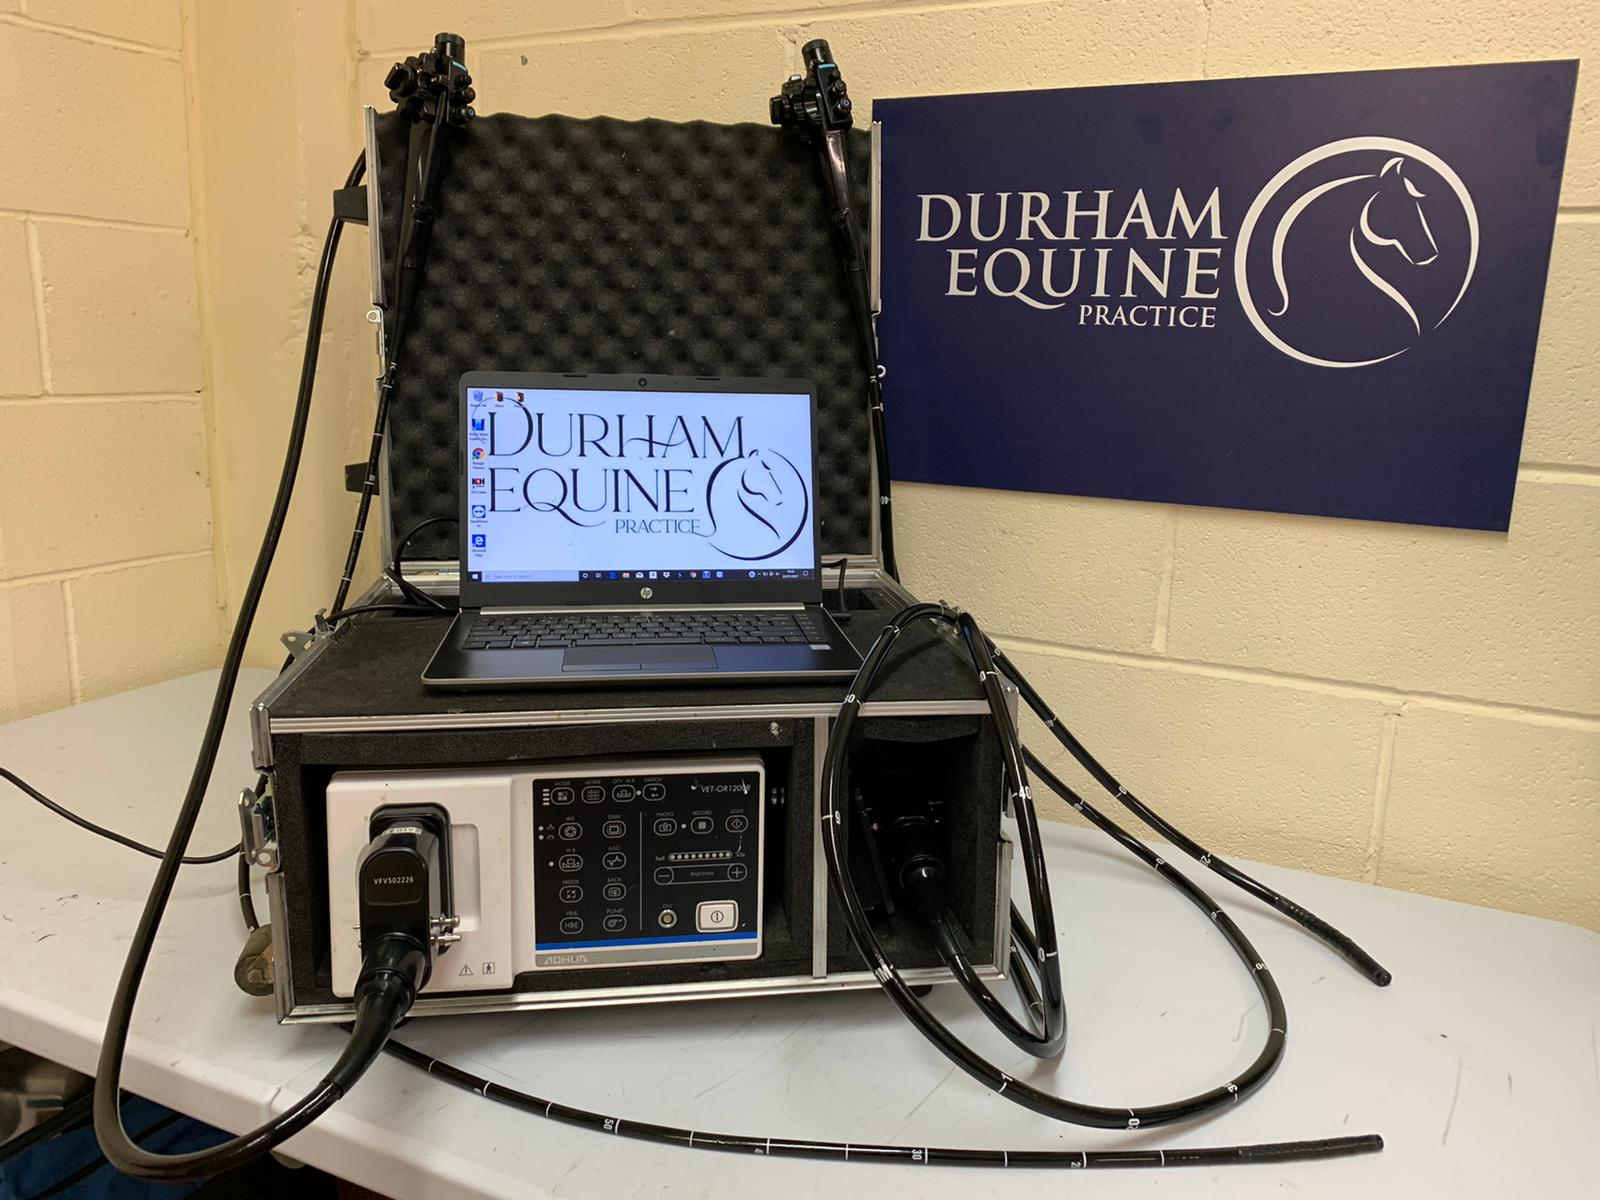 Endoscopy Scope - Durham Equine Practice